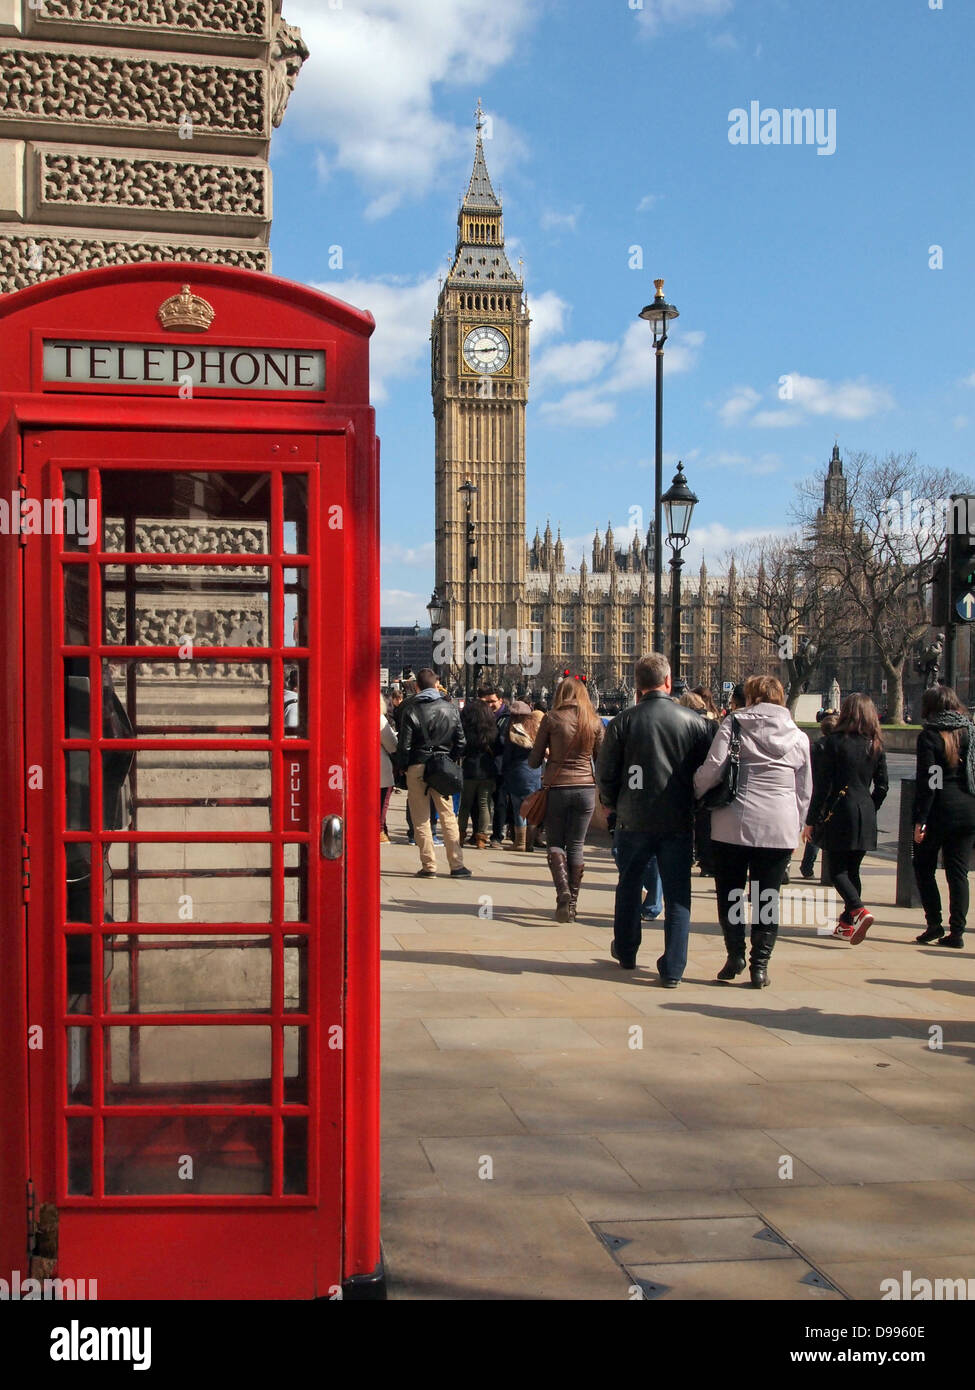 Street scene with red Telephone Box and Big Ben and Parliament Buildings in Background - Stock Image